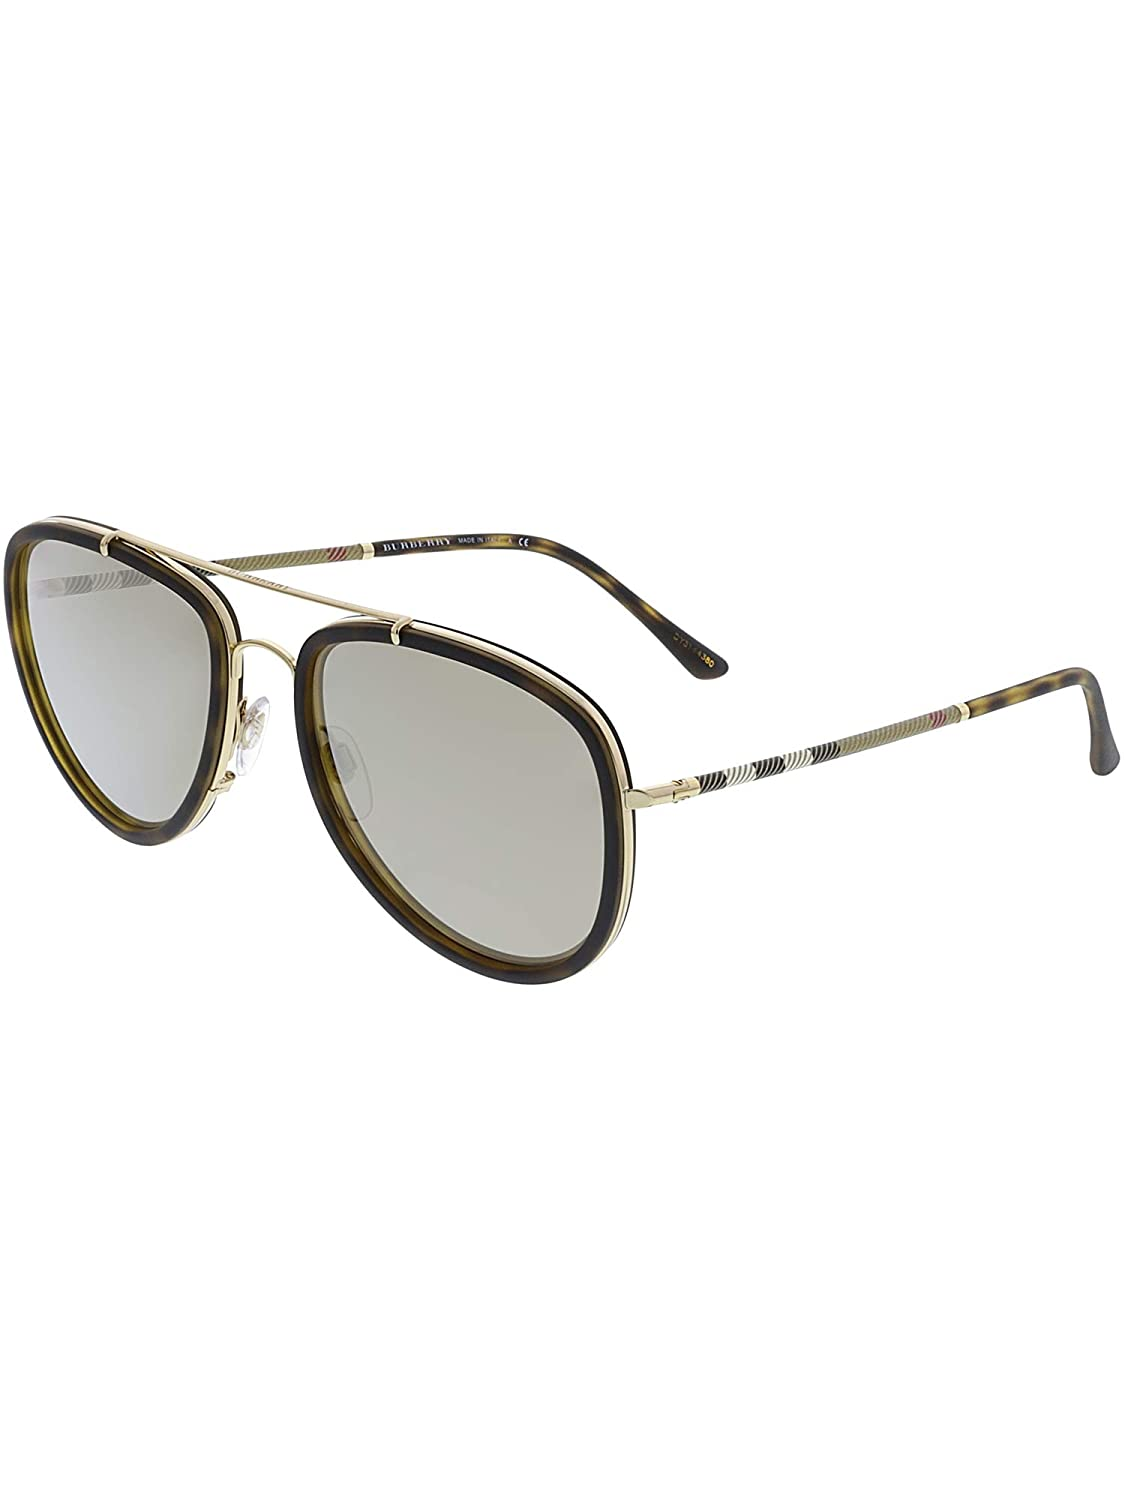 bc8f1c9cff81 Amazon.com: Burberry Unisex 0BE3090Q Brushed Gold/Dark Havana/Light  Brown/Mirror Gold One Size: Burberry: Clothing